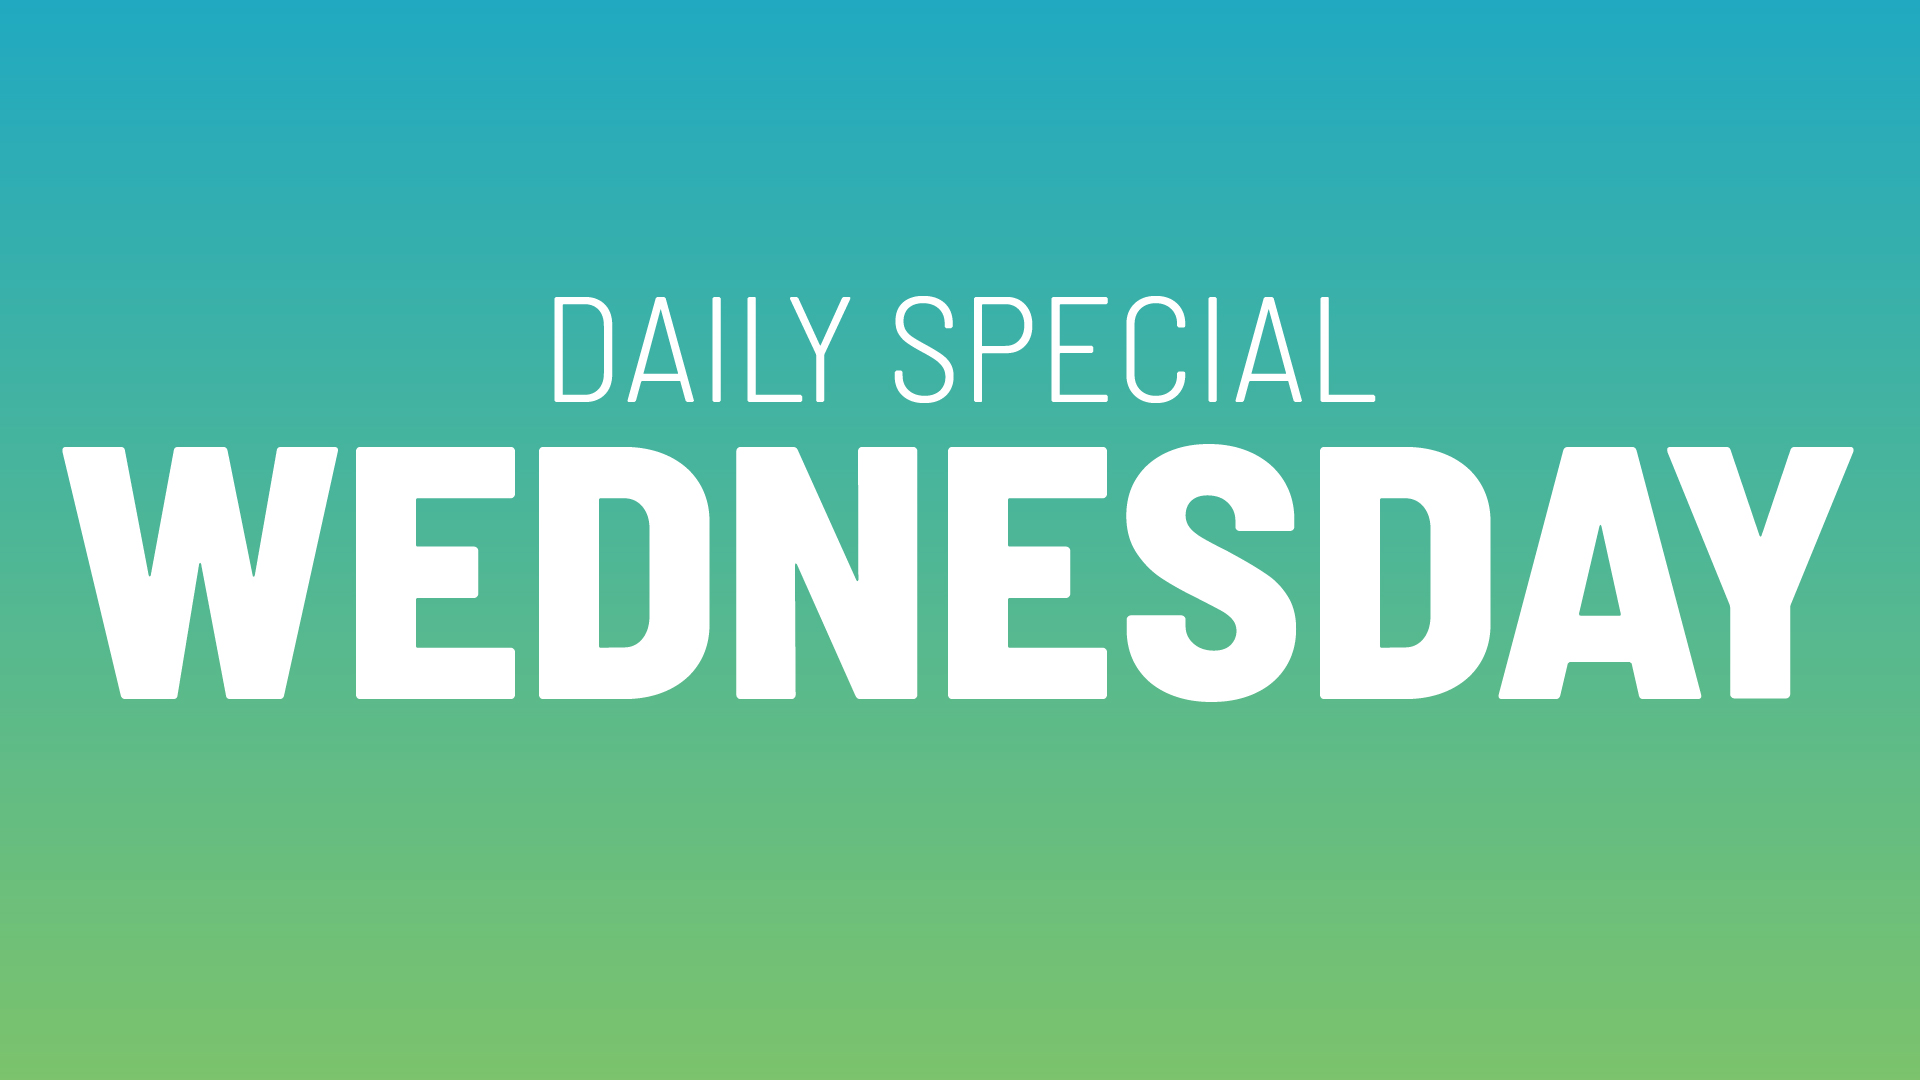 Wednesday Daily Specials